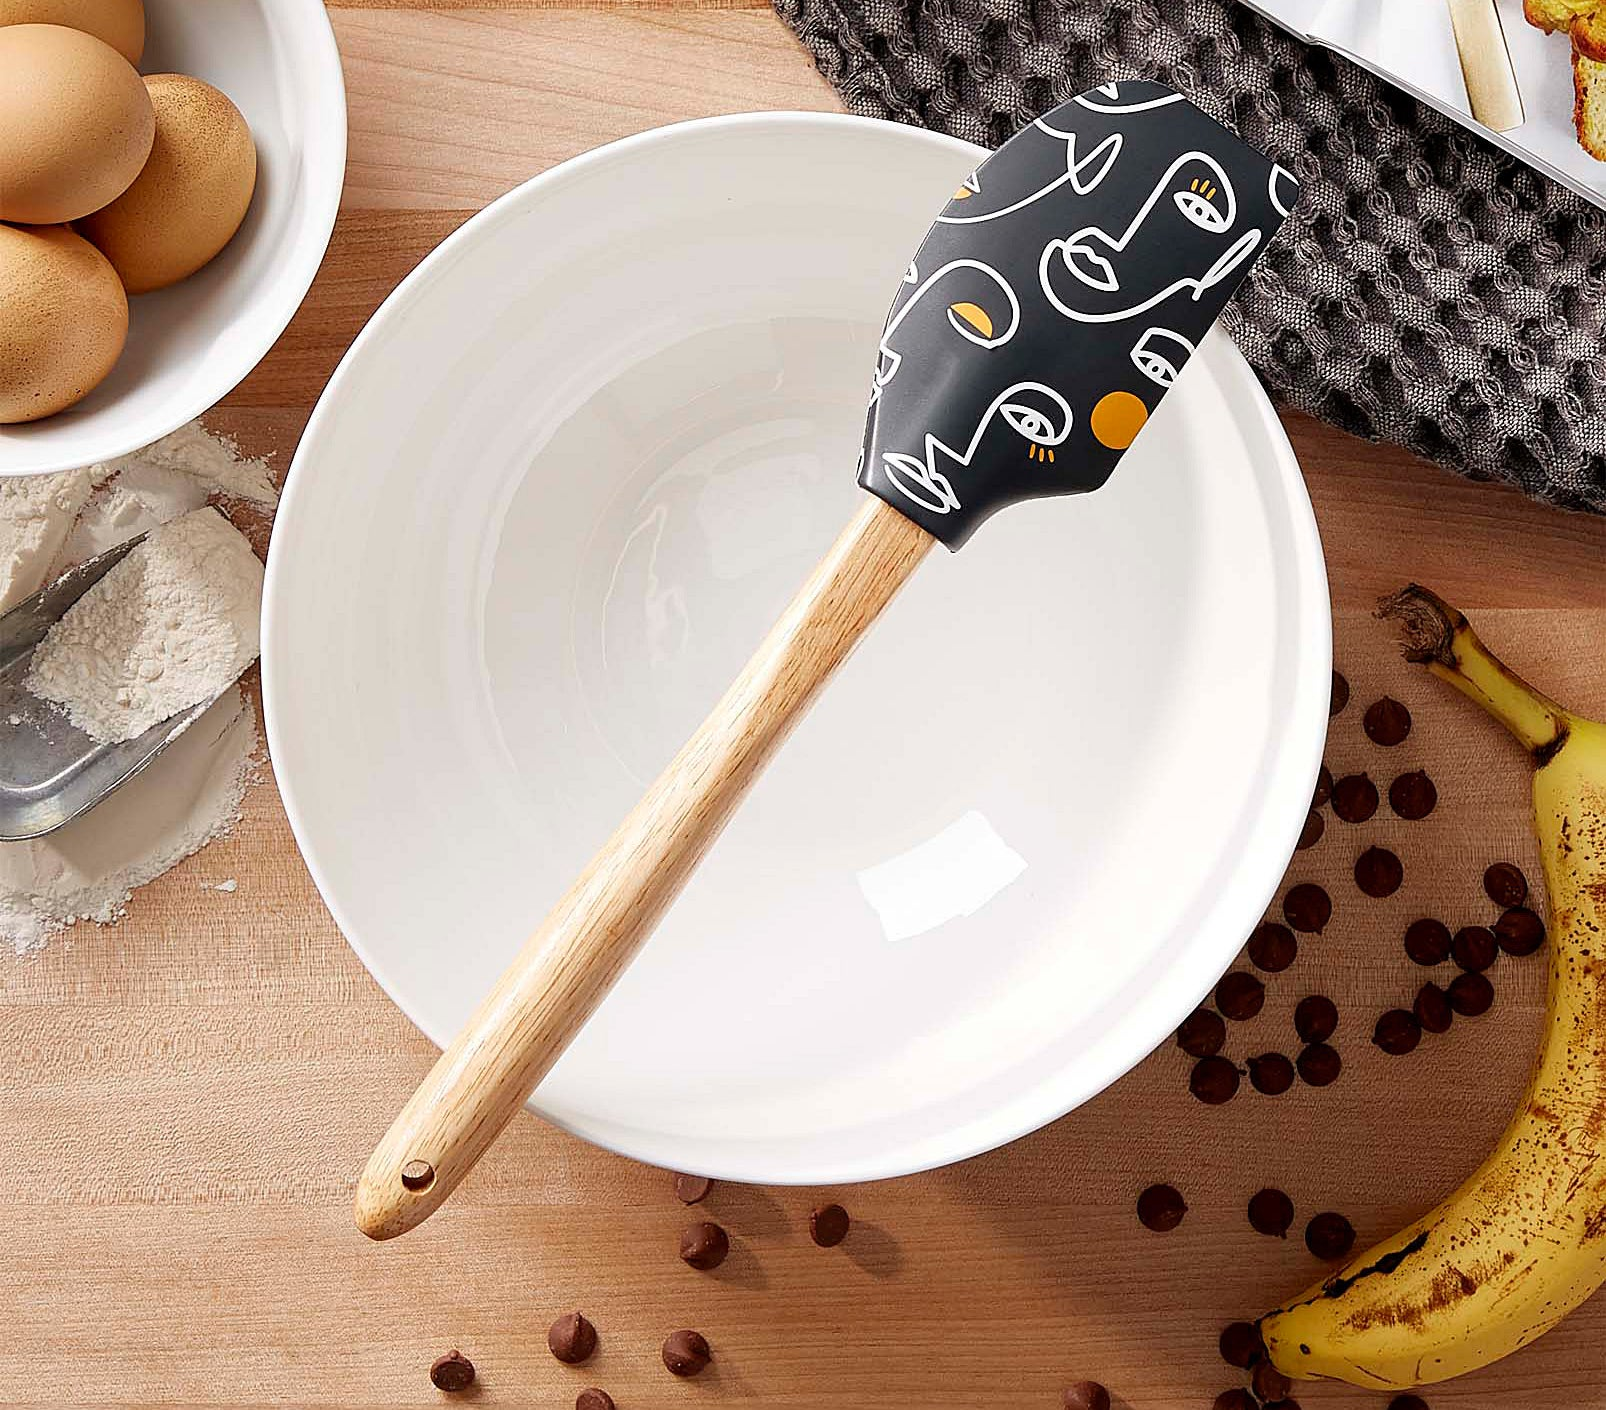 A spatula sitting on top of a large empty mixing bowl